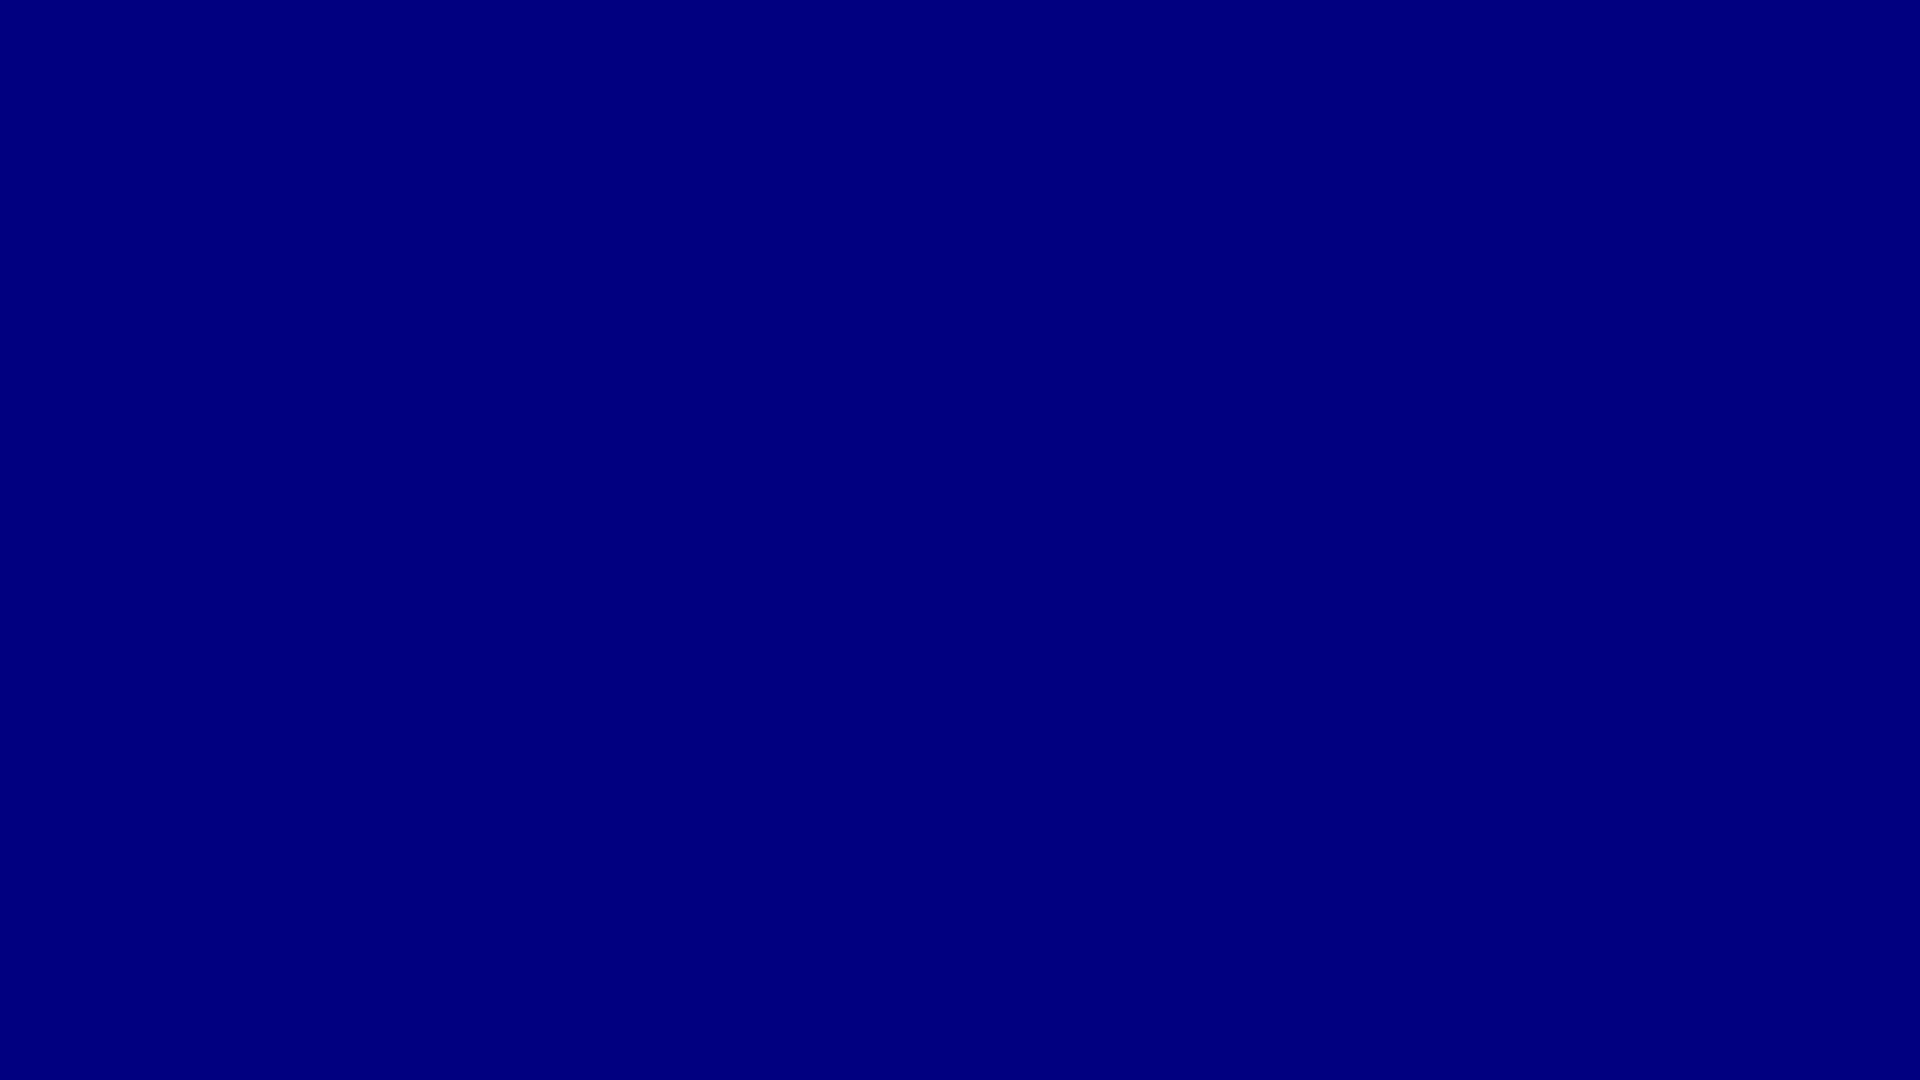 Navy Blue Background  Wallpapersafari. Living Room Furniture For Sale In Bangalore. Jewel Tone Living Room Ideas. Decorating Small Livingrooms. How To Decorate A Living Room Mantel. Living Room Movie Theater Portland Or. Living Room Colors Ideas 2014. The Living Room Restaurant Calgary Menu. Living Room Decorating Ideas For Large Space